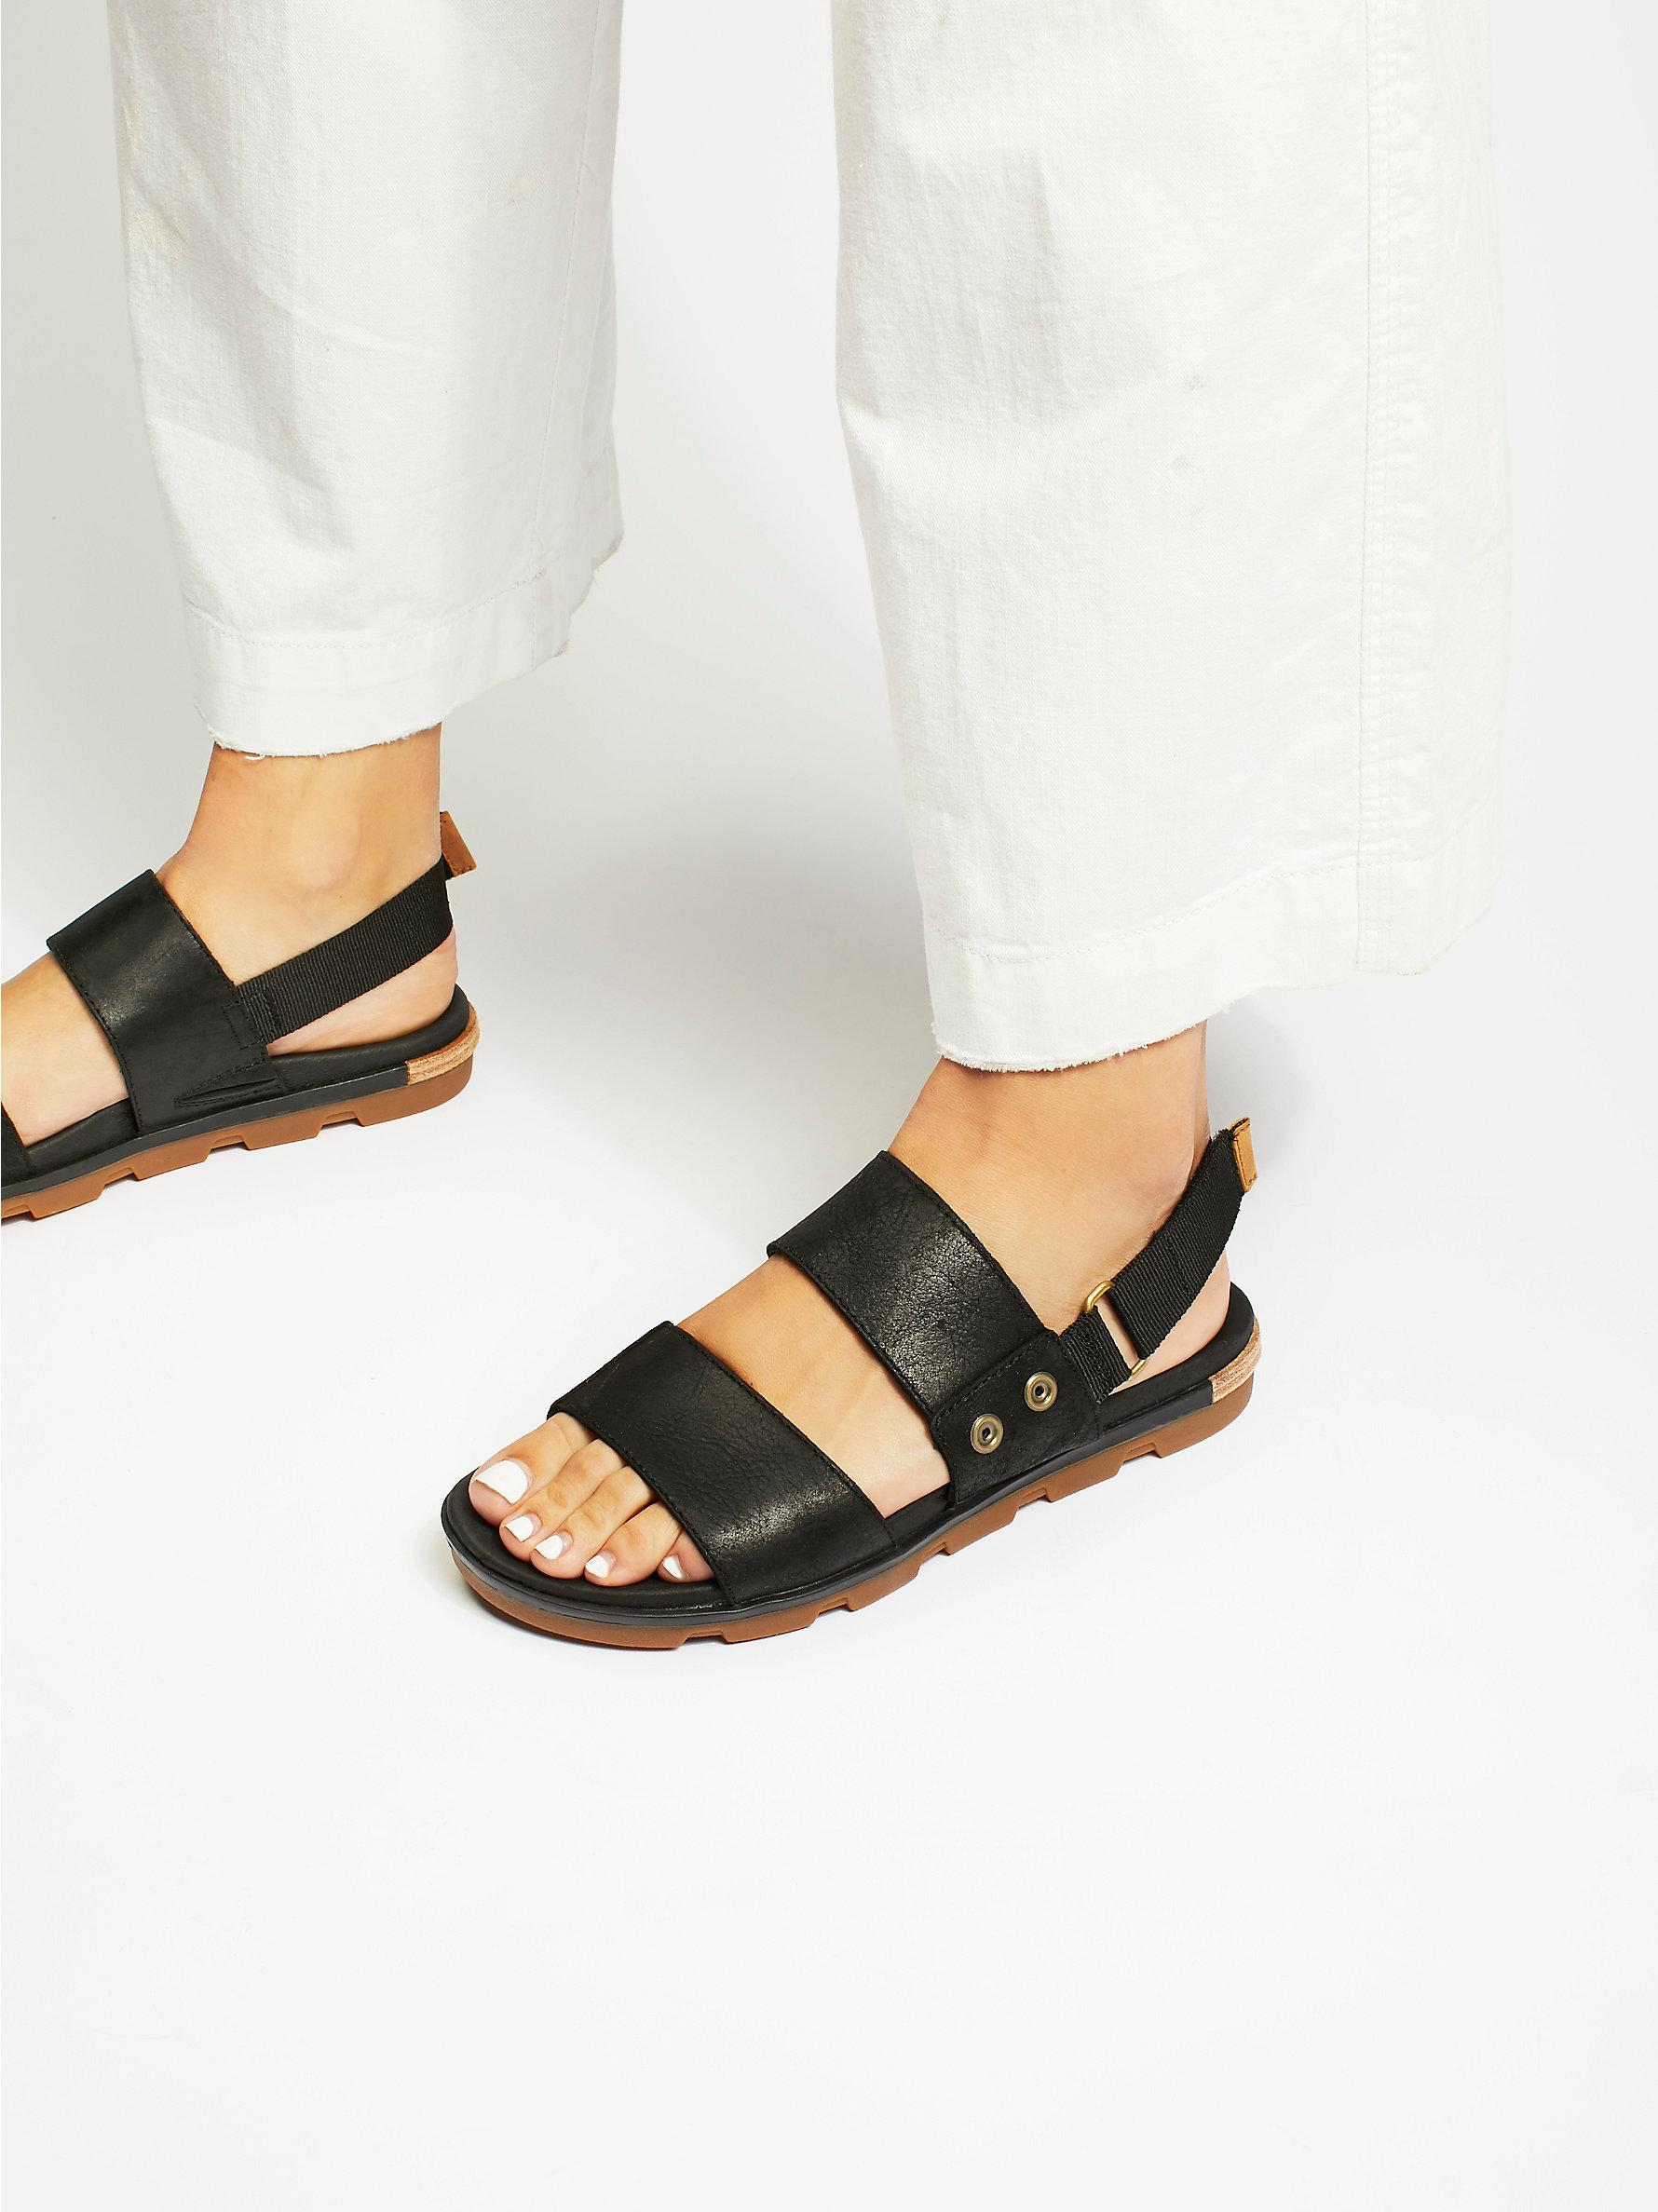 Free People Torpeda Sandal In Black Lyst